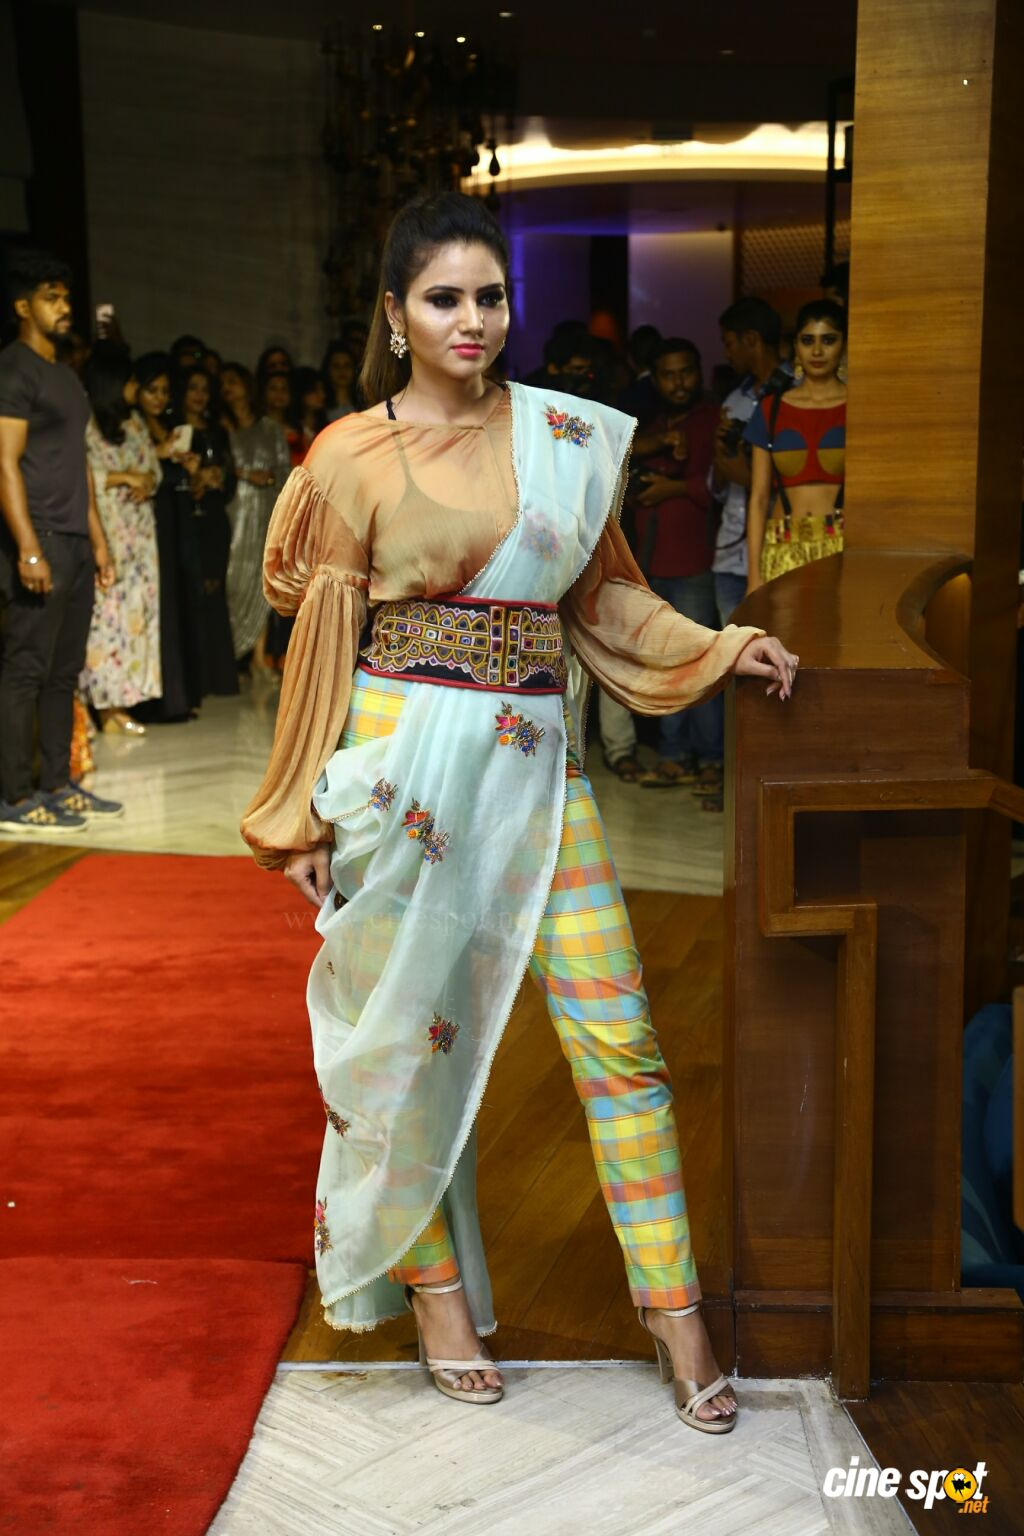 Apsara Reddy in Association with Park Hyatt Chennai Presented Limitless Love (1)